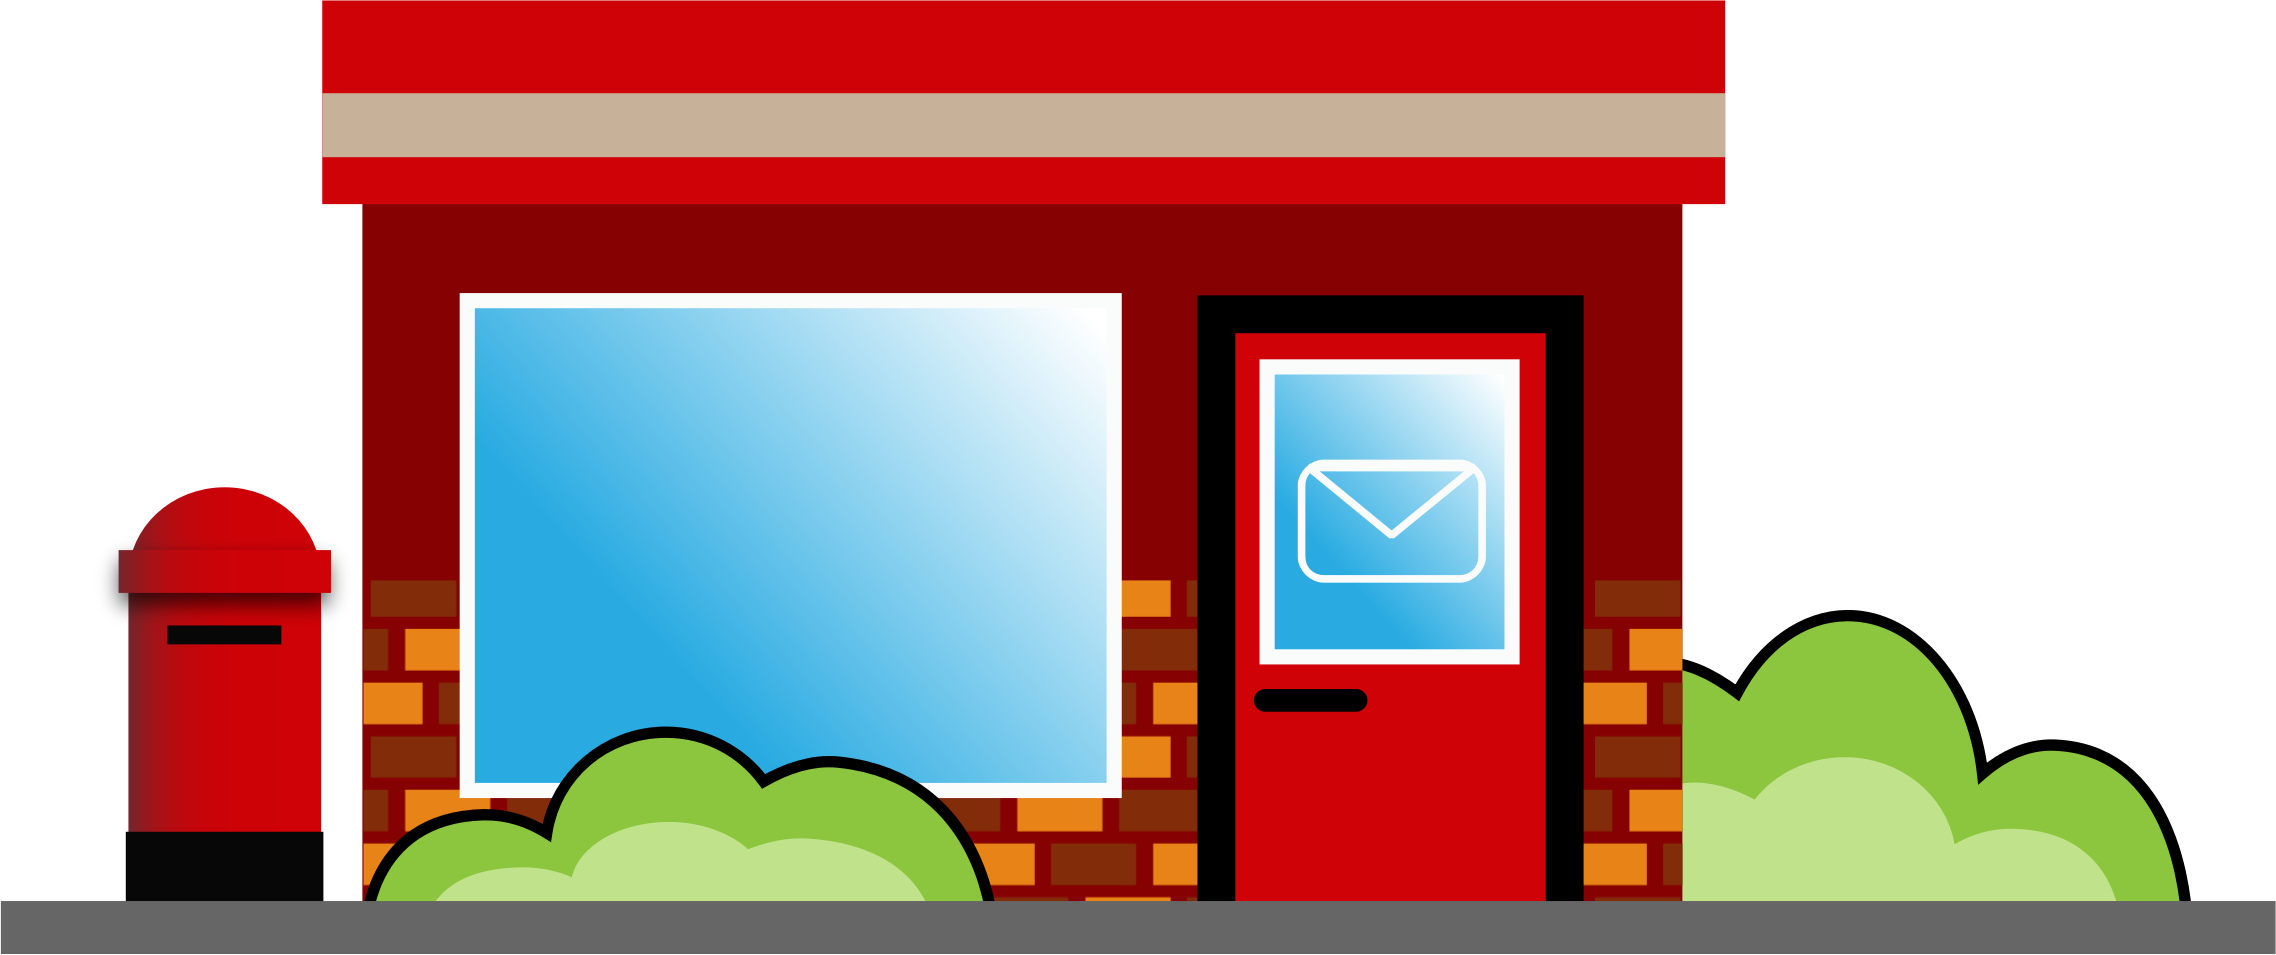 Mail clipart post office. Big image png